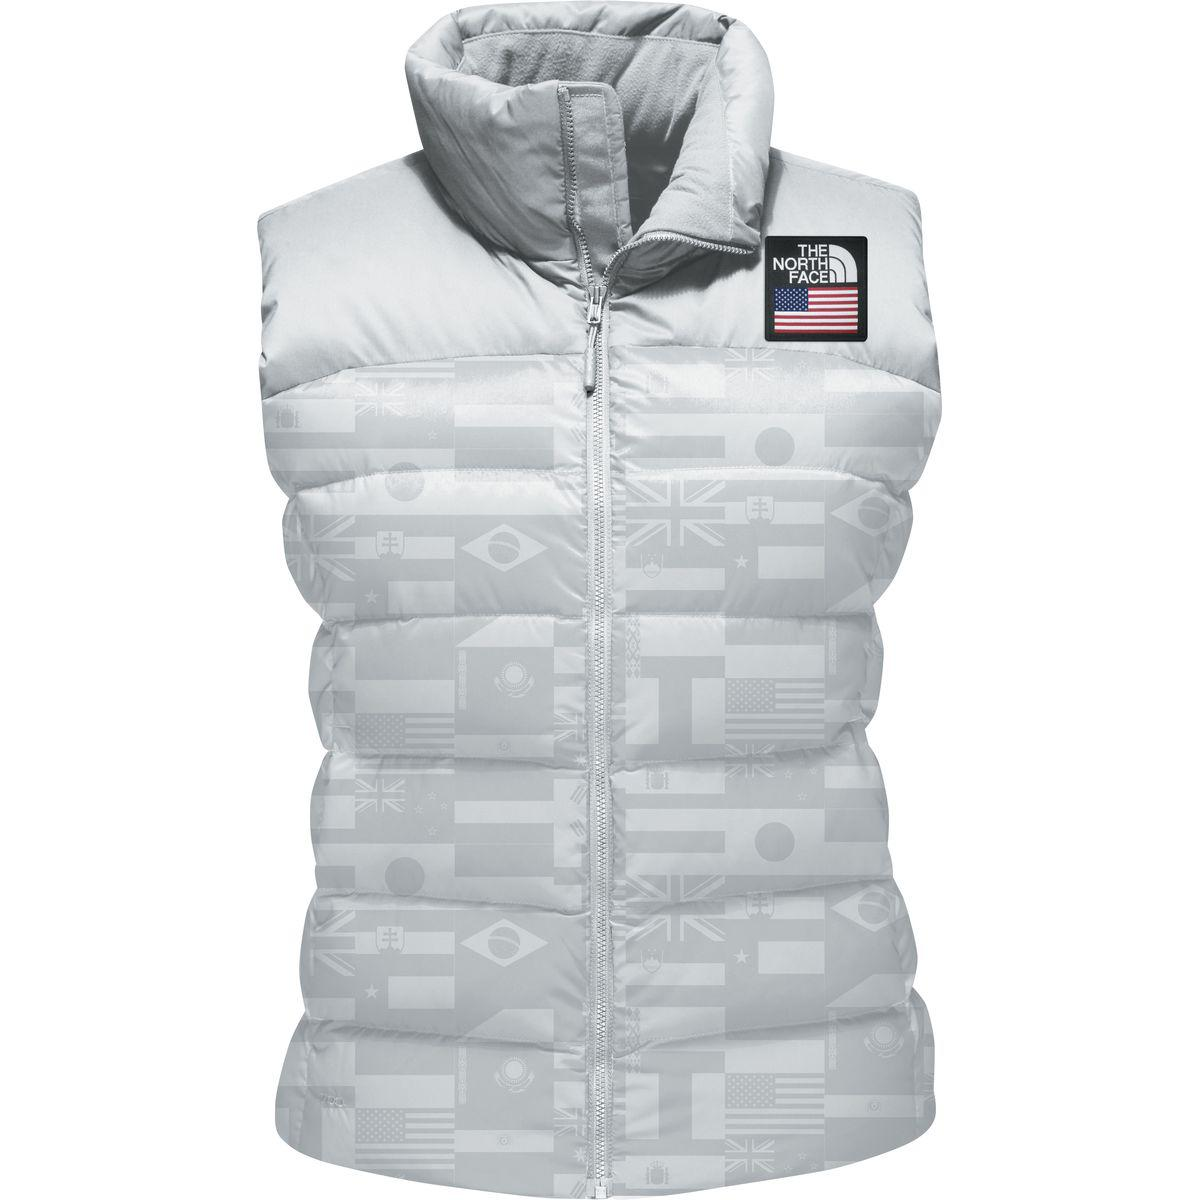 cecfba1ad1 Lyst - The North Face International Collection Nuptse Vest in Gray